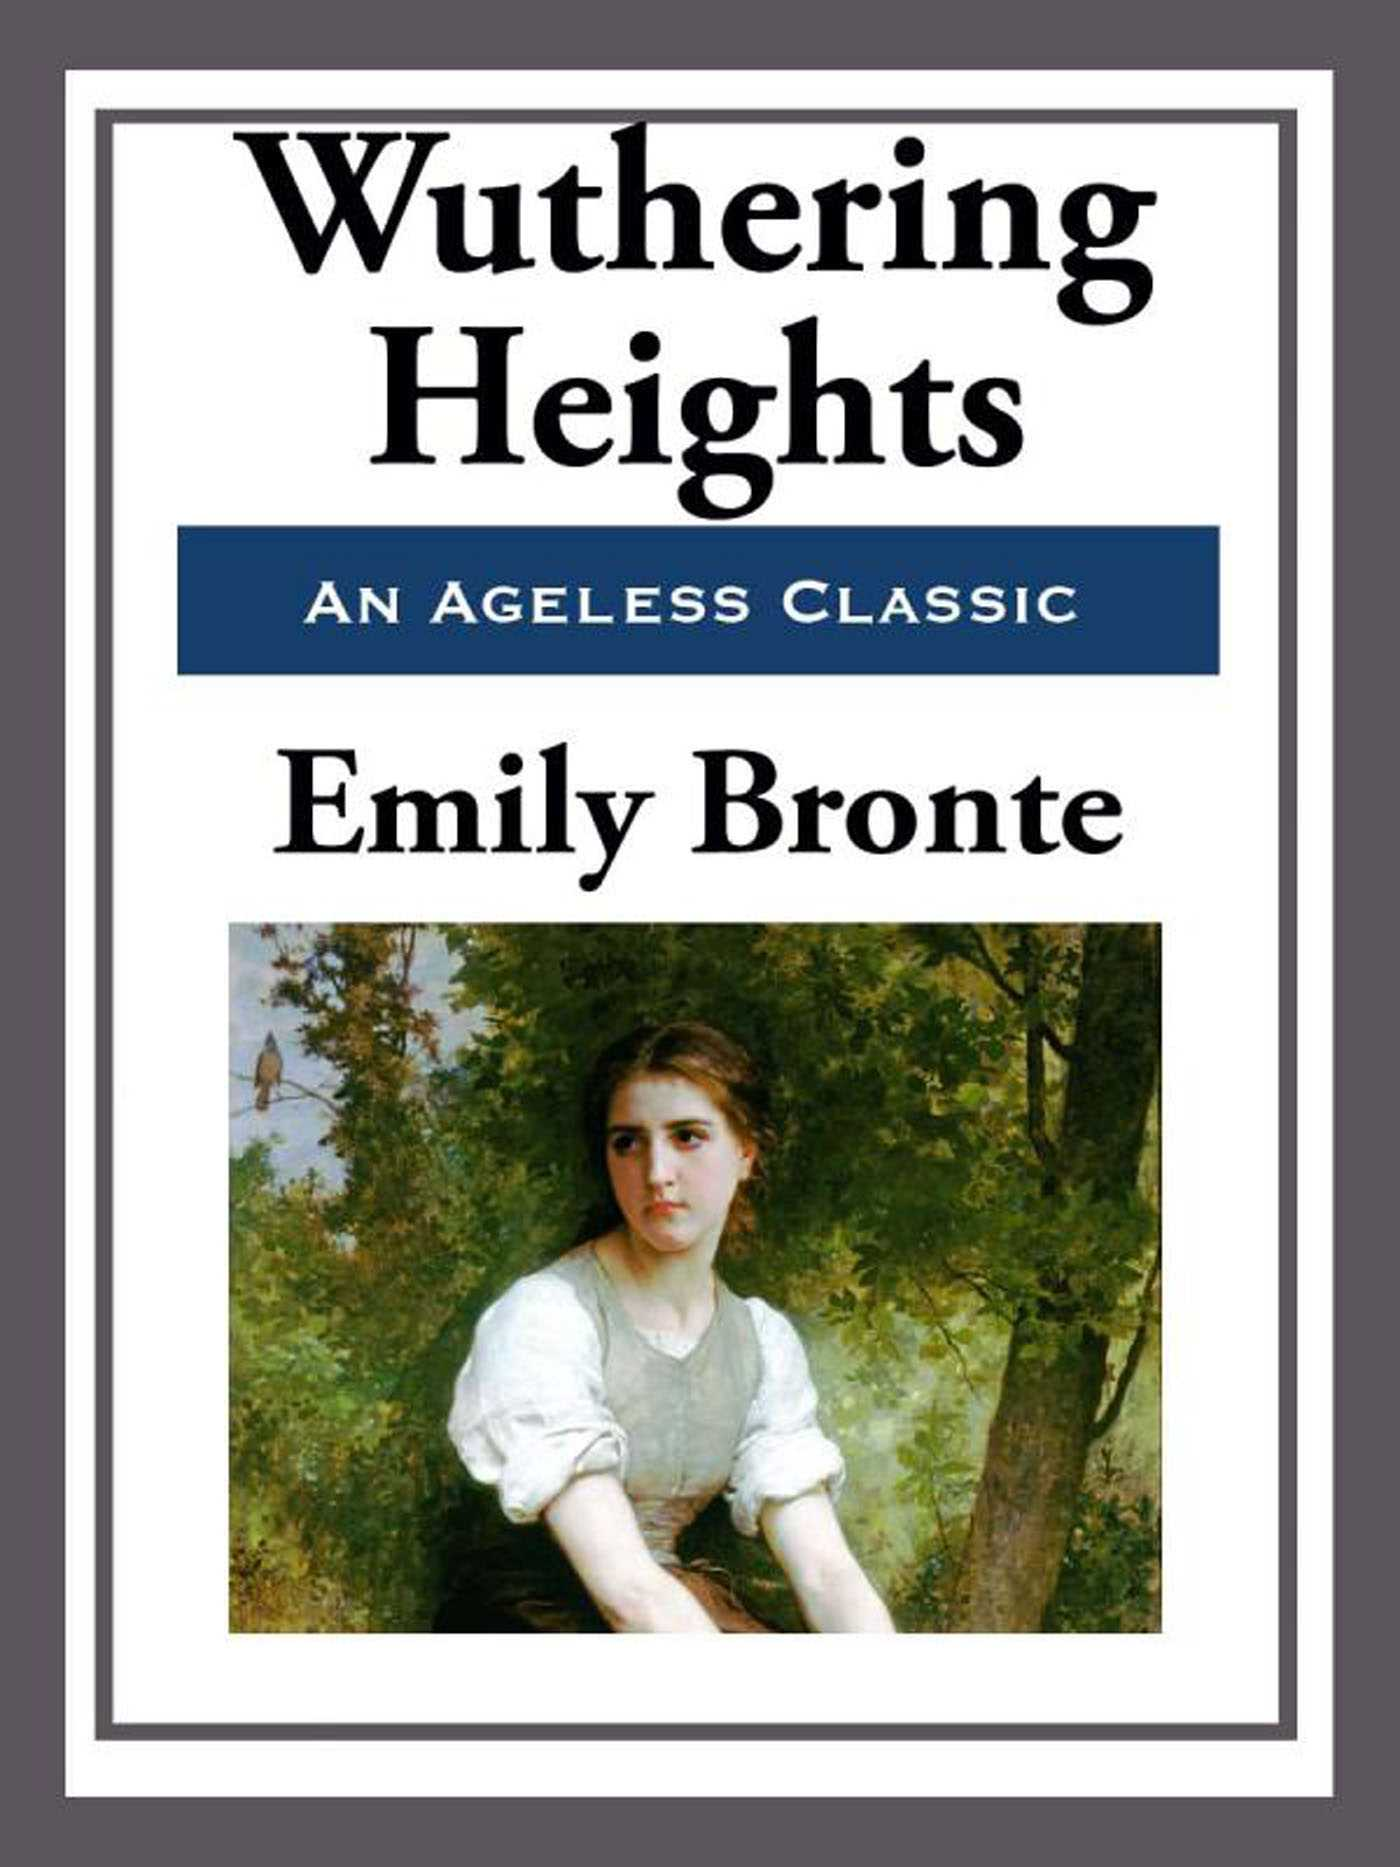 the tragic love story in wuthering heights a novel by emily bronte Emily bronte's classic novel, wuthering heights, is not simply the tragic love story it may appear to be on the surface, but is an example of class differences and the role of capital in.